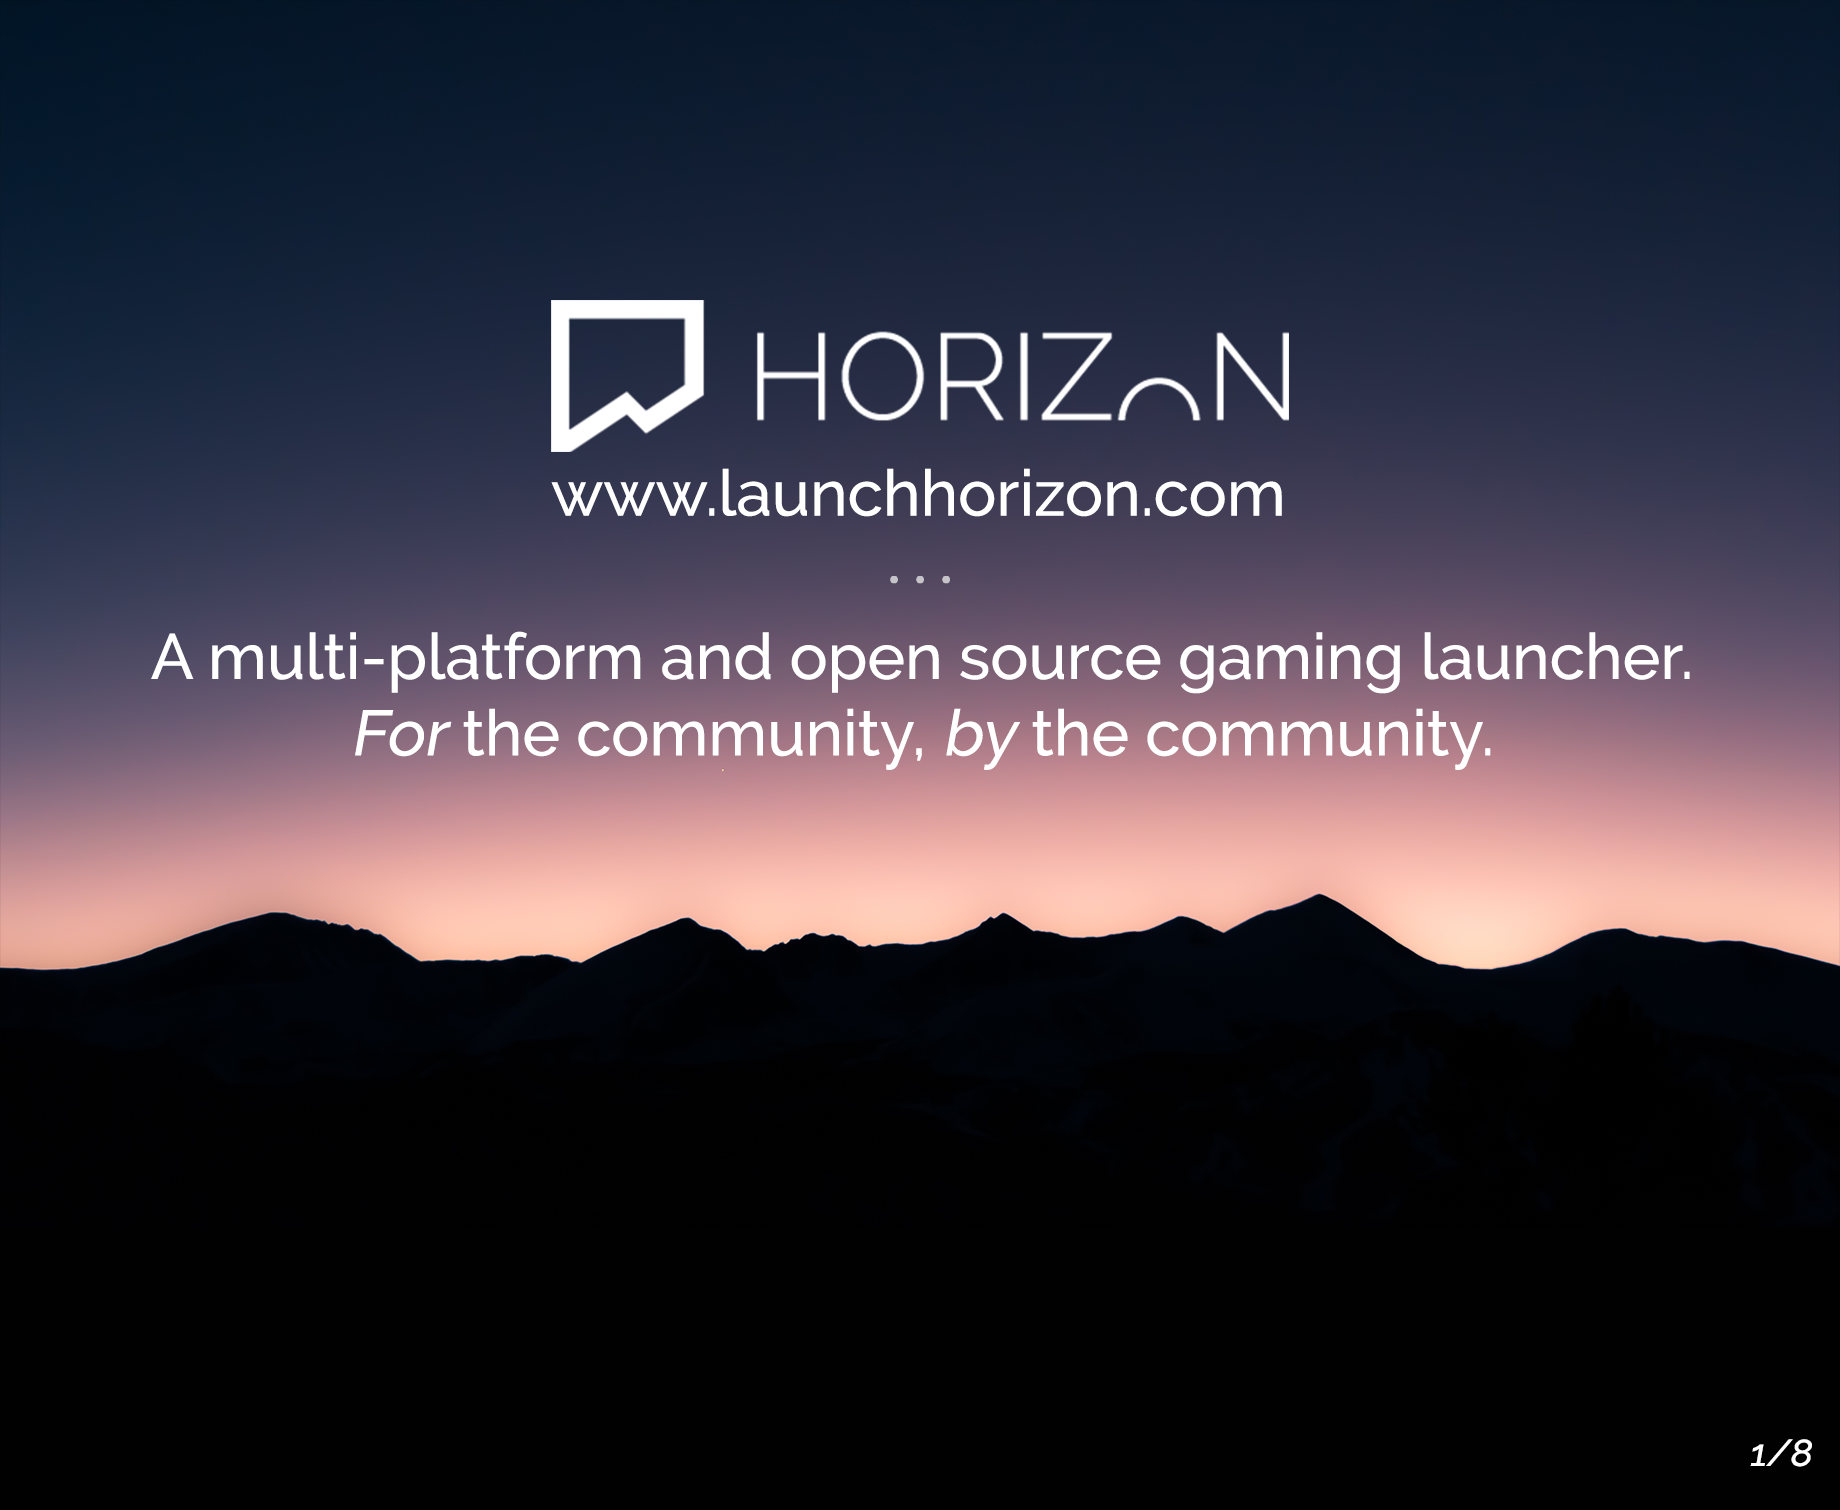 Horizon Wants To Be Your All-In-One PC Game Launcher - Gameranx